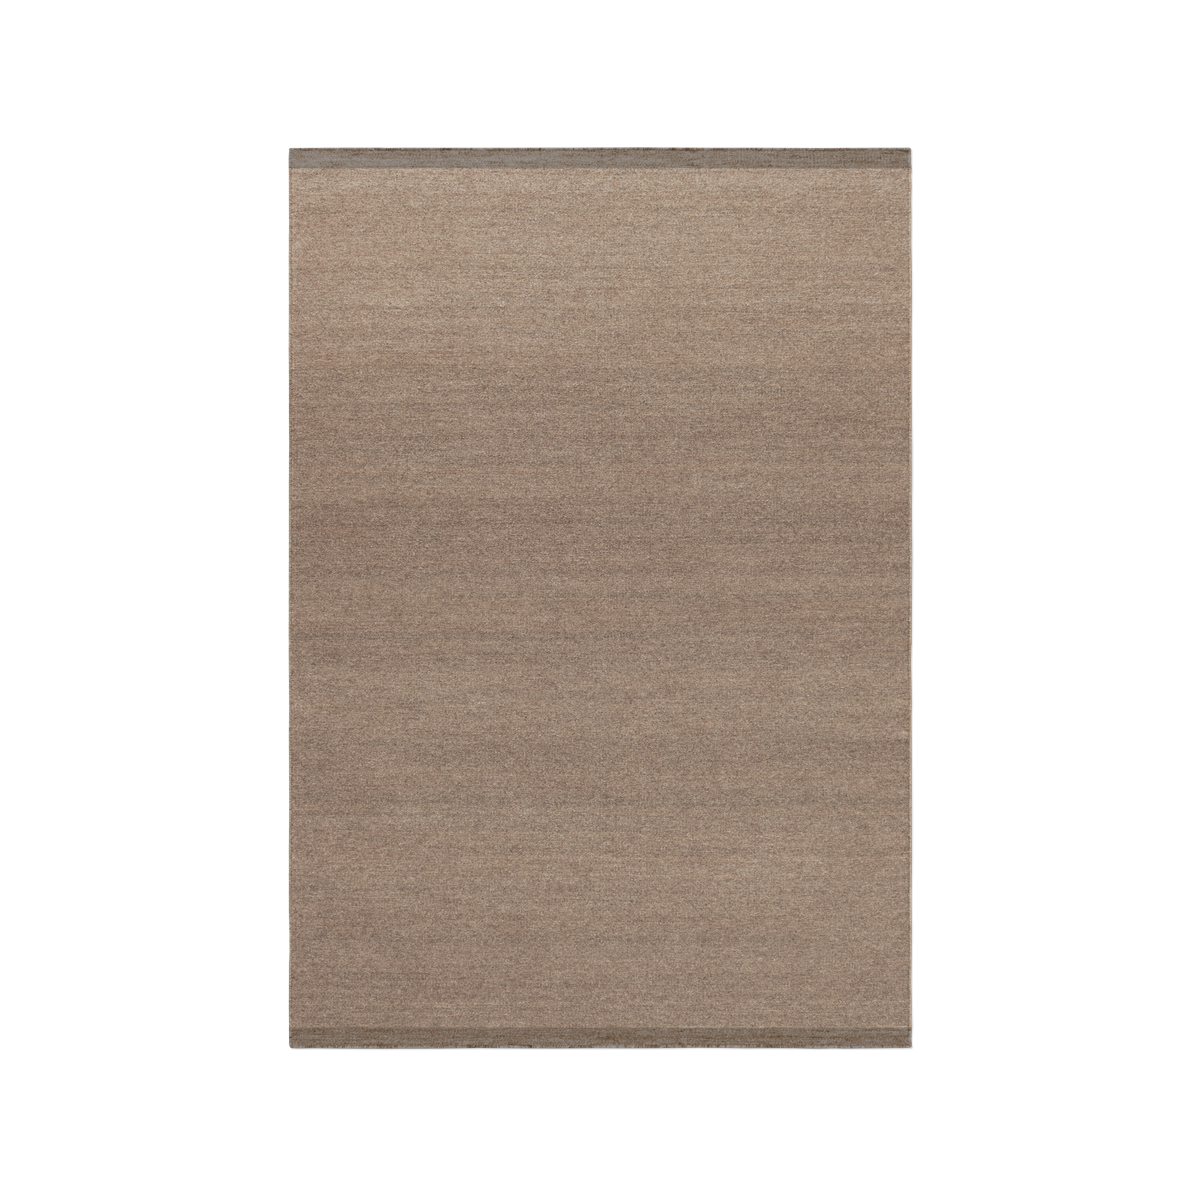 Product image of the flatweave rug Zero in color Brown. The rug has two darker borders at the short sides.